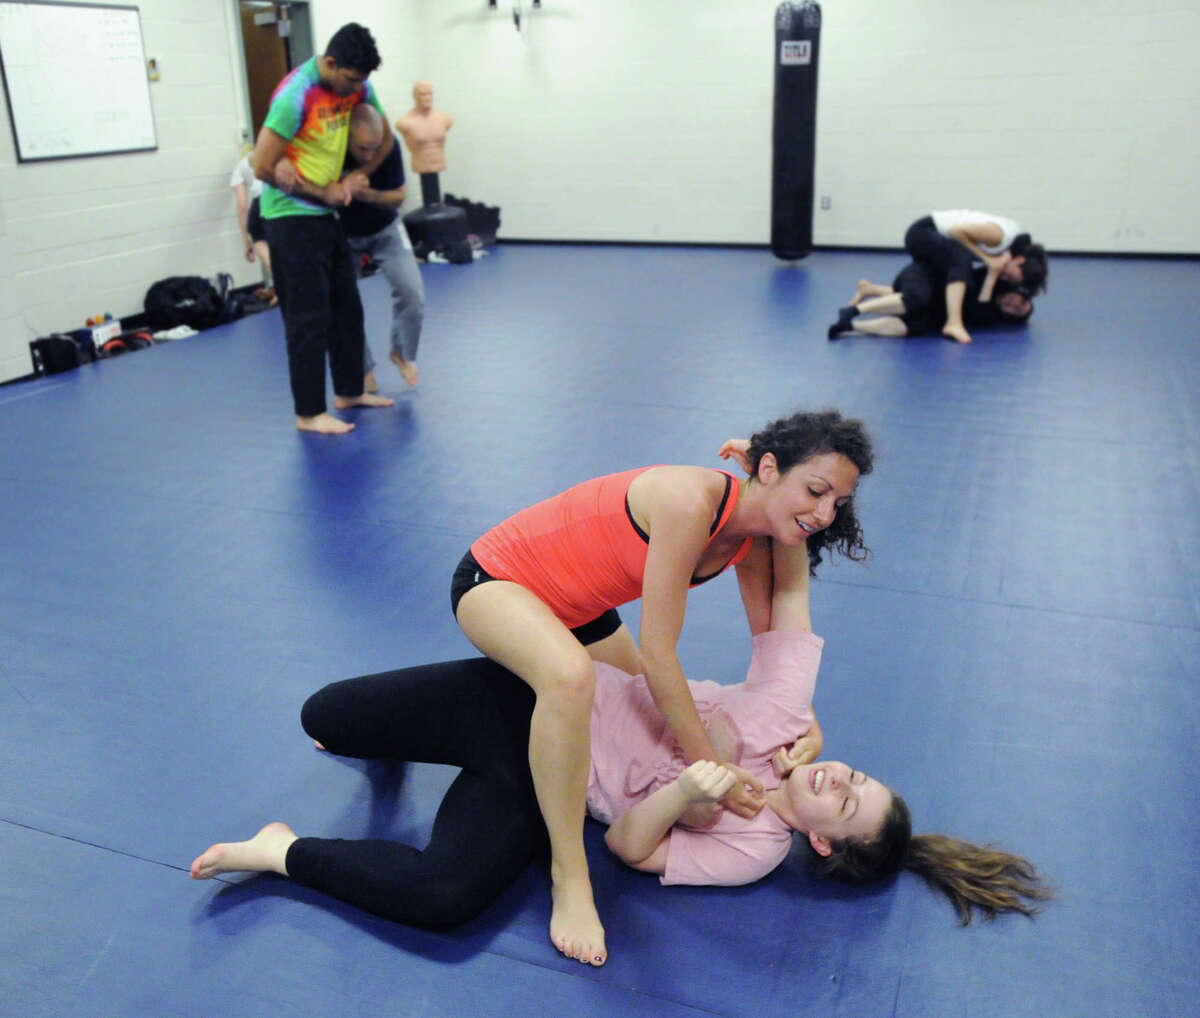 Greenwich Time reporter Brittany Lyte, at center on top, grapples with Rebecca Murray of Greenwich, during the Greenwich Police Department's Women's Self-Defense Class taught by Greenwich Police Officer Jeff Morris and Greenwich Police Detective Fred Quezada at Greenwich Police Headquarters, Thursday, June 12, 2014.